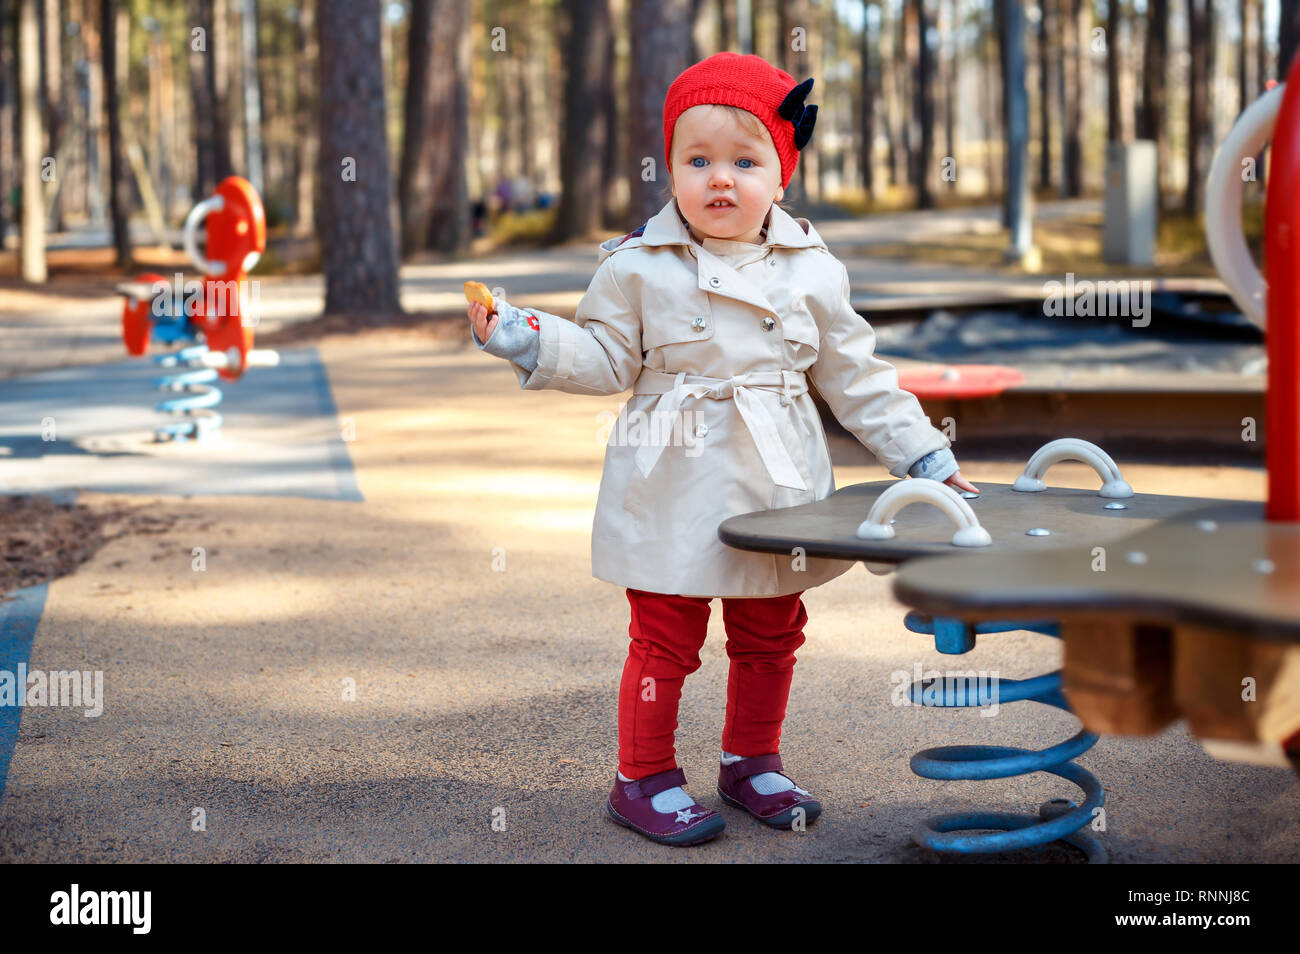 Sweet blond little toddler girl in beautiful beige trench coat and red cap plays outdoors at playground - Stock Image